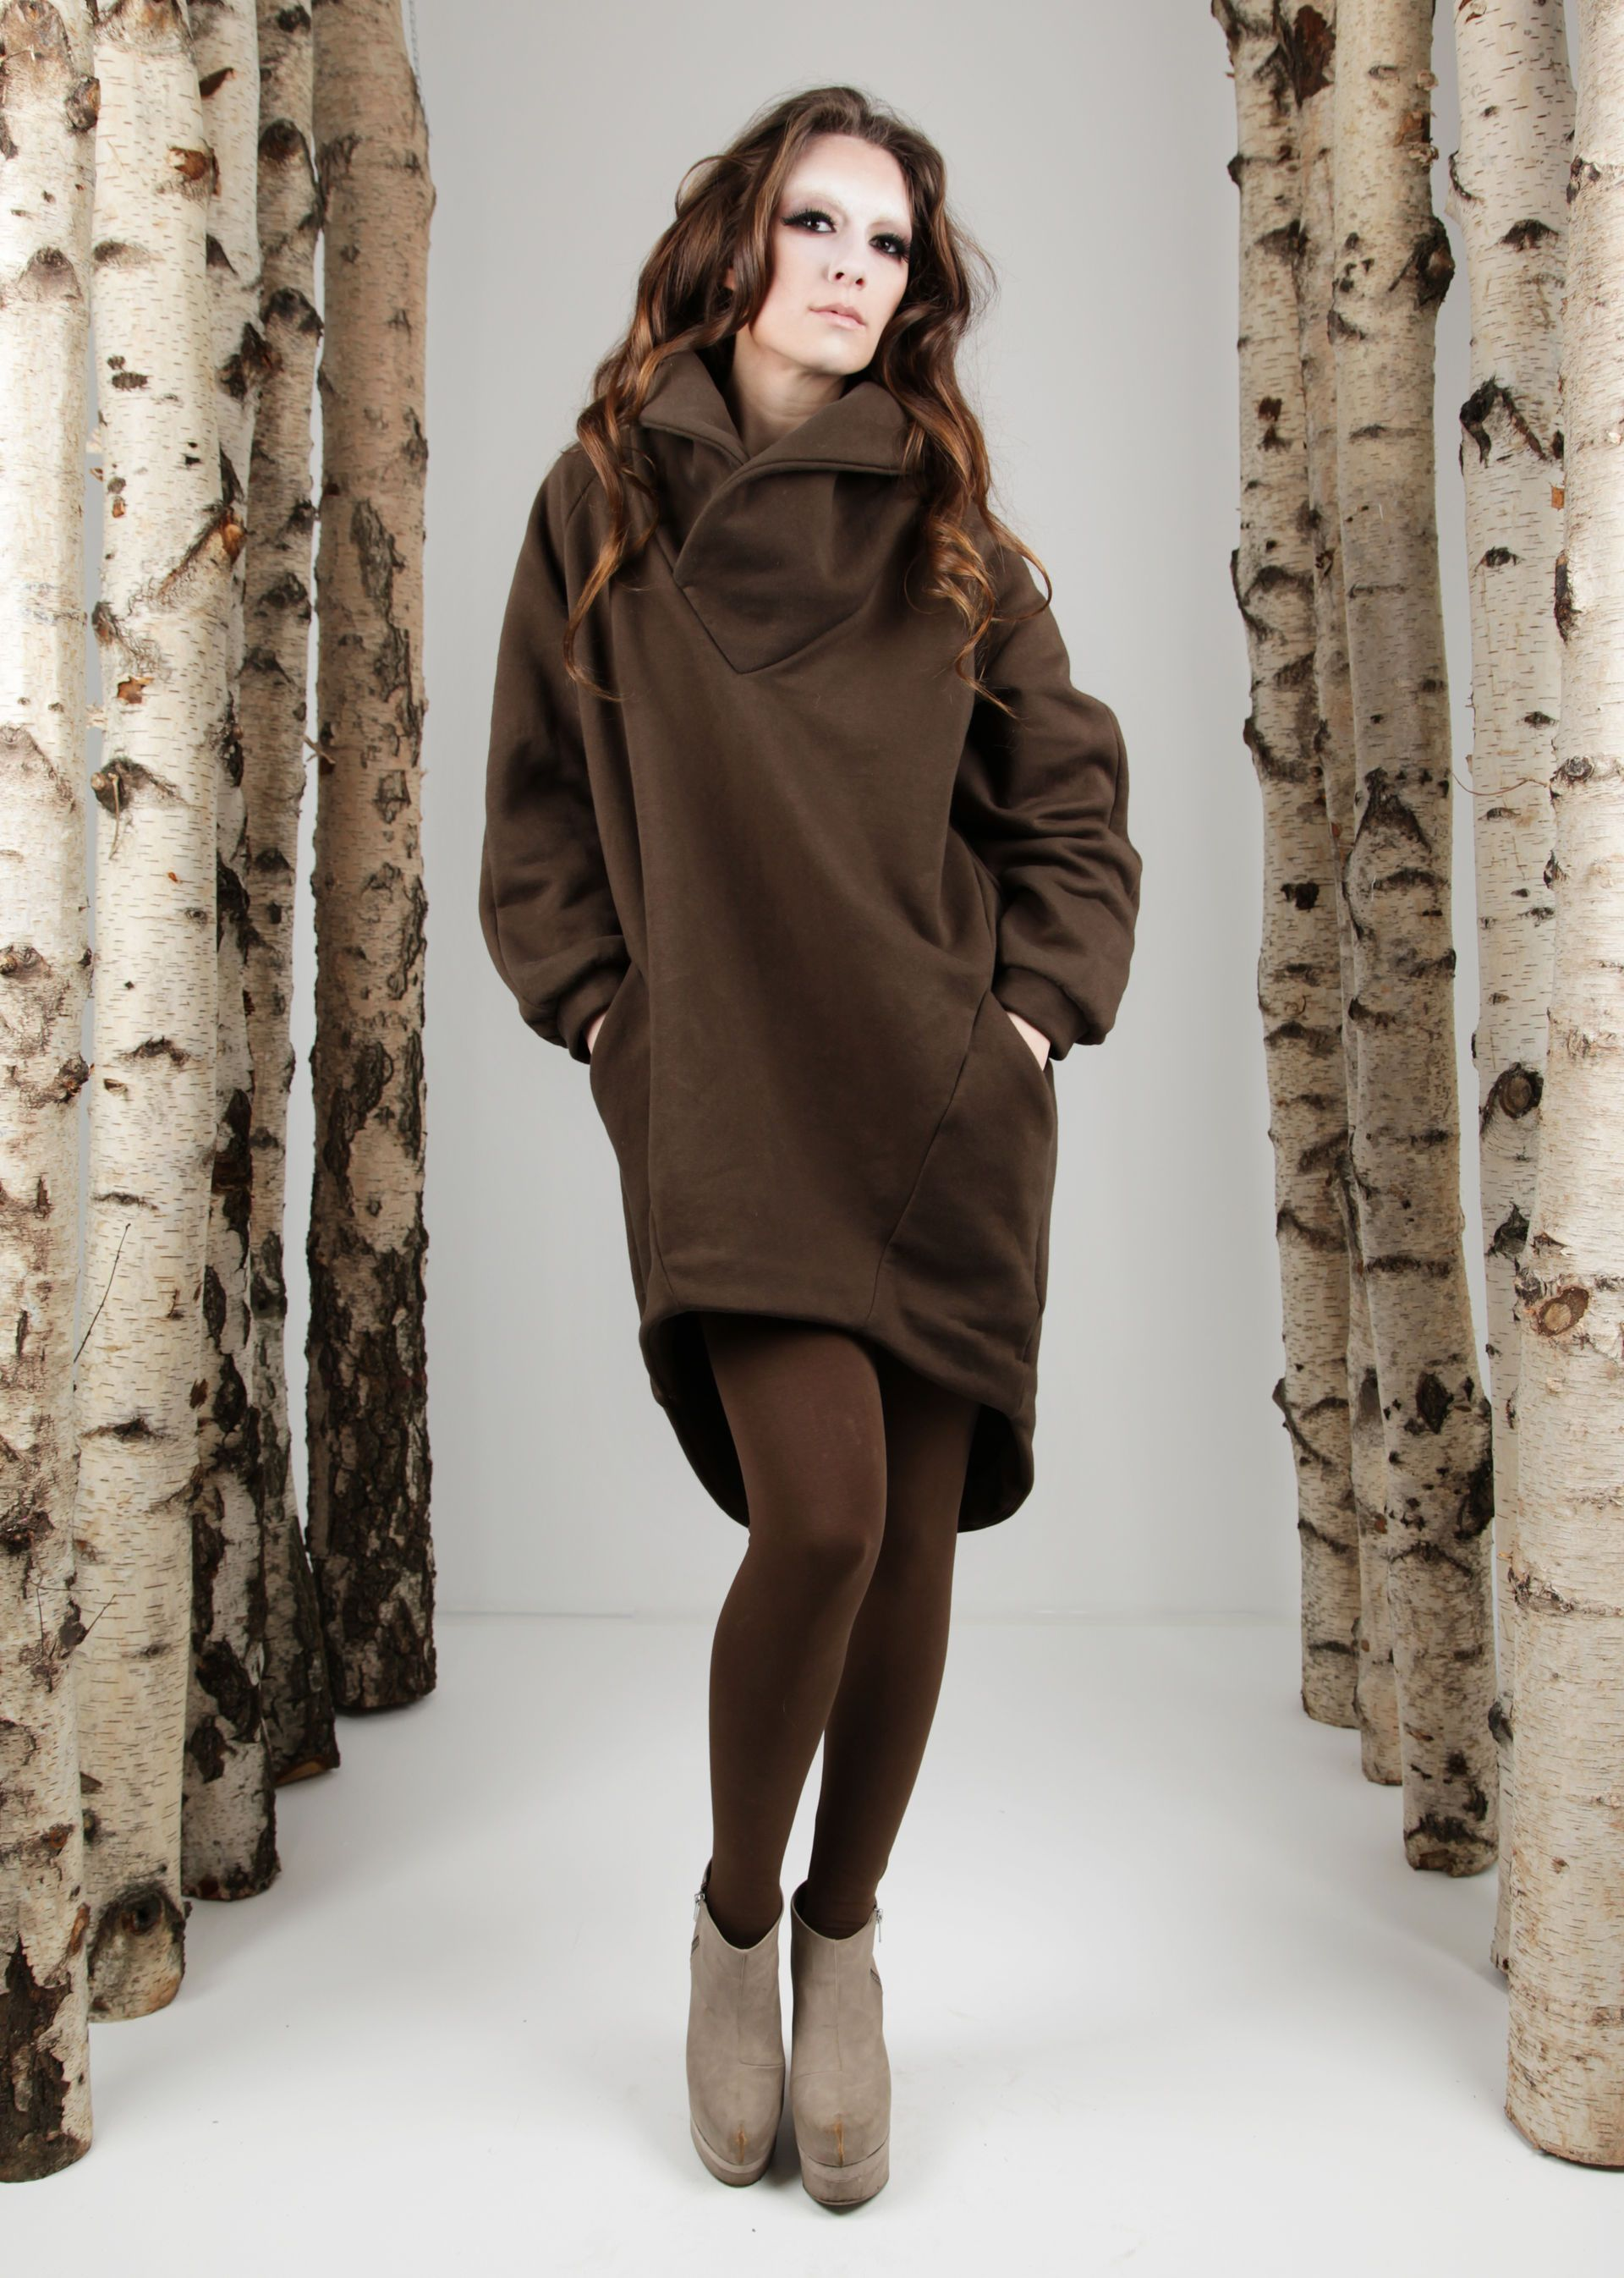 icy_wind_sweater_dress_-_brown_notjustalabel_28750164.jpg ...